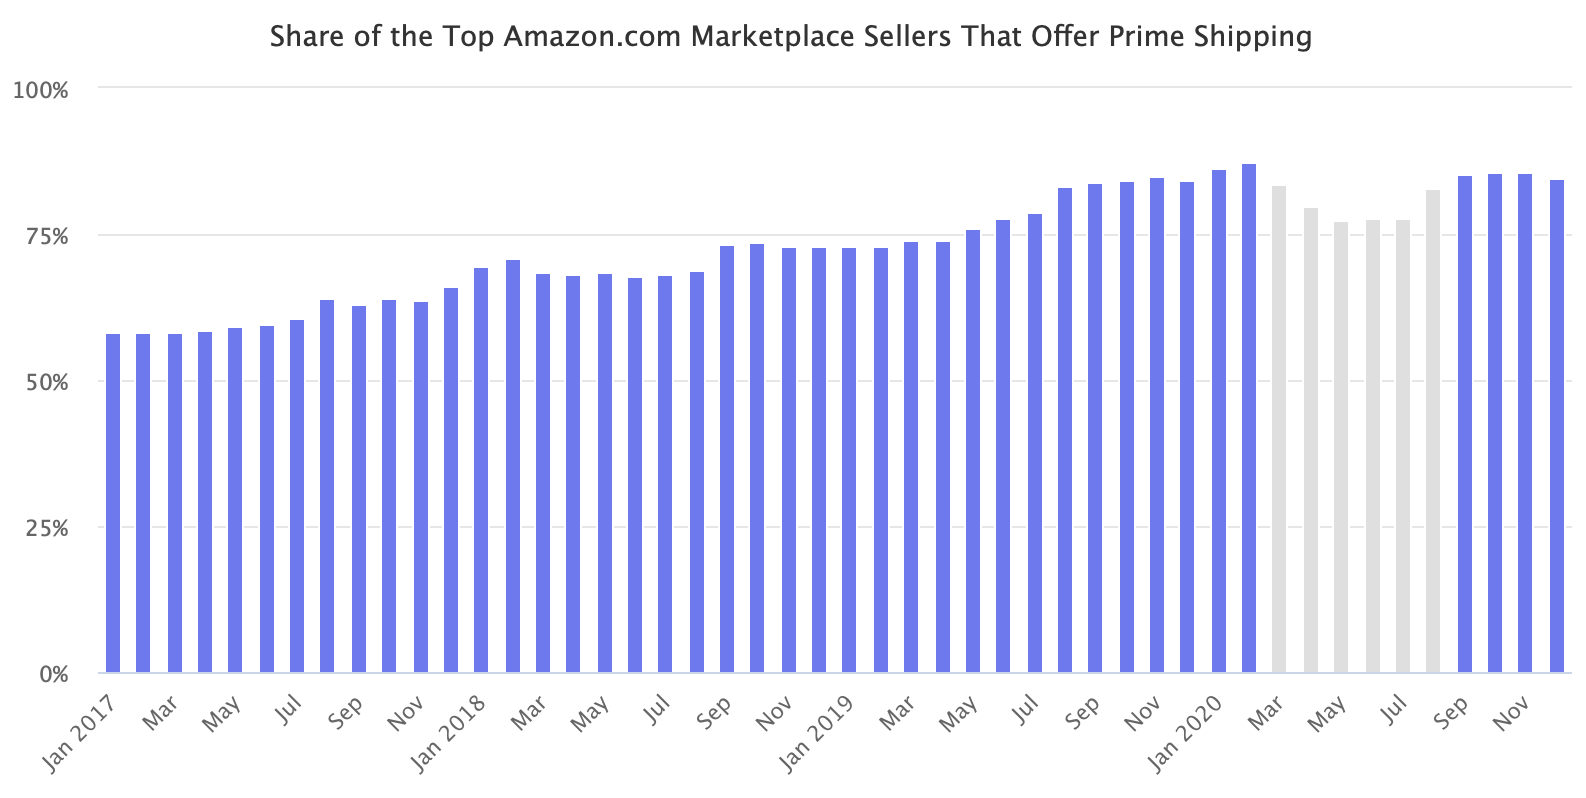 Share of the Top Amazon.com Marketplace Sellers That Offer Prime Shipping